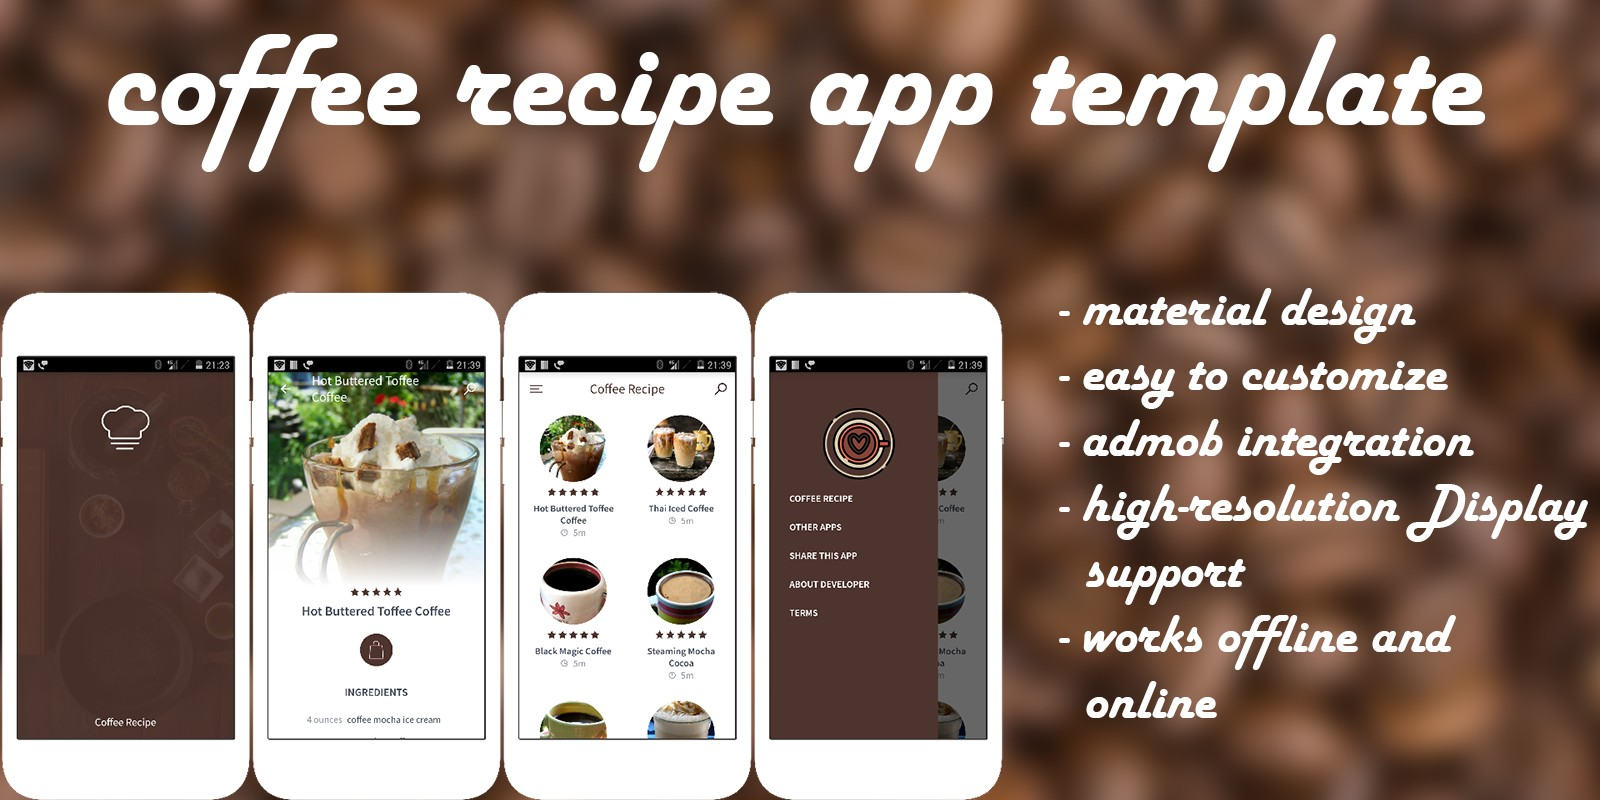 Coffee recipe android recipe app template food app templates for coffee recipe android recipe app template forumfinder Image collections